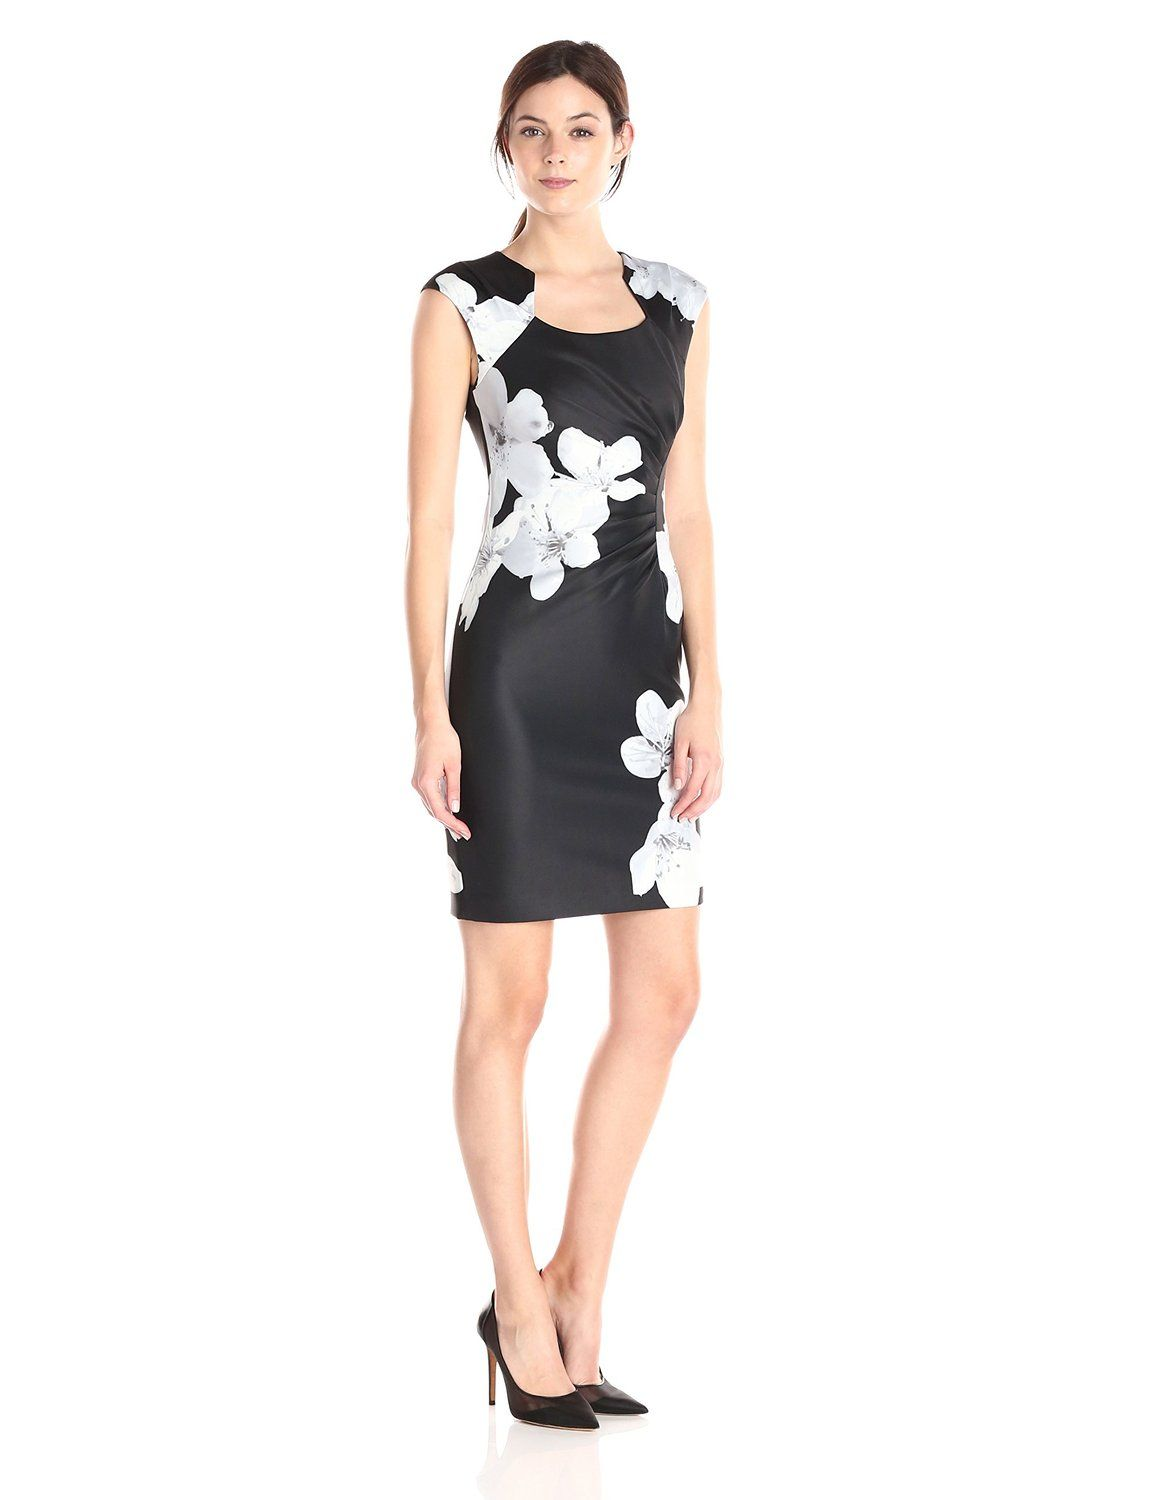 3b66c2250bc5 Amazon.com  Calvin Klein Women s Floral Print Side Ruched Dress  Clothing